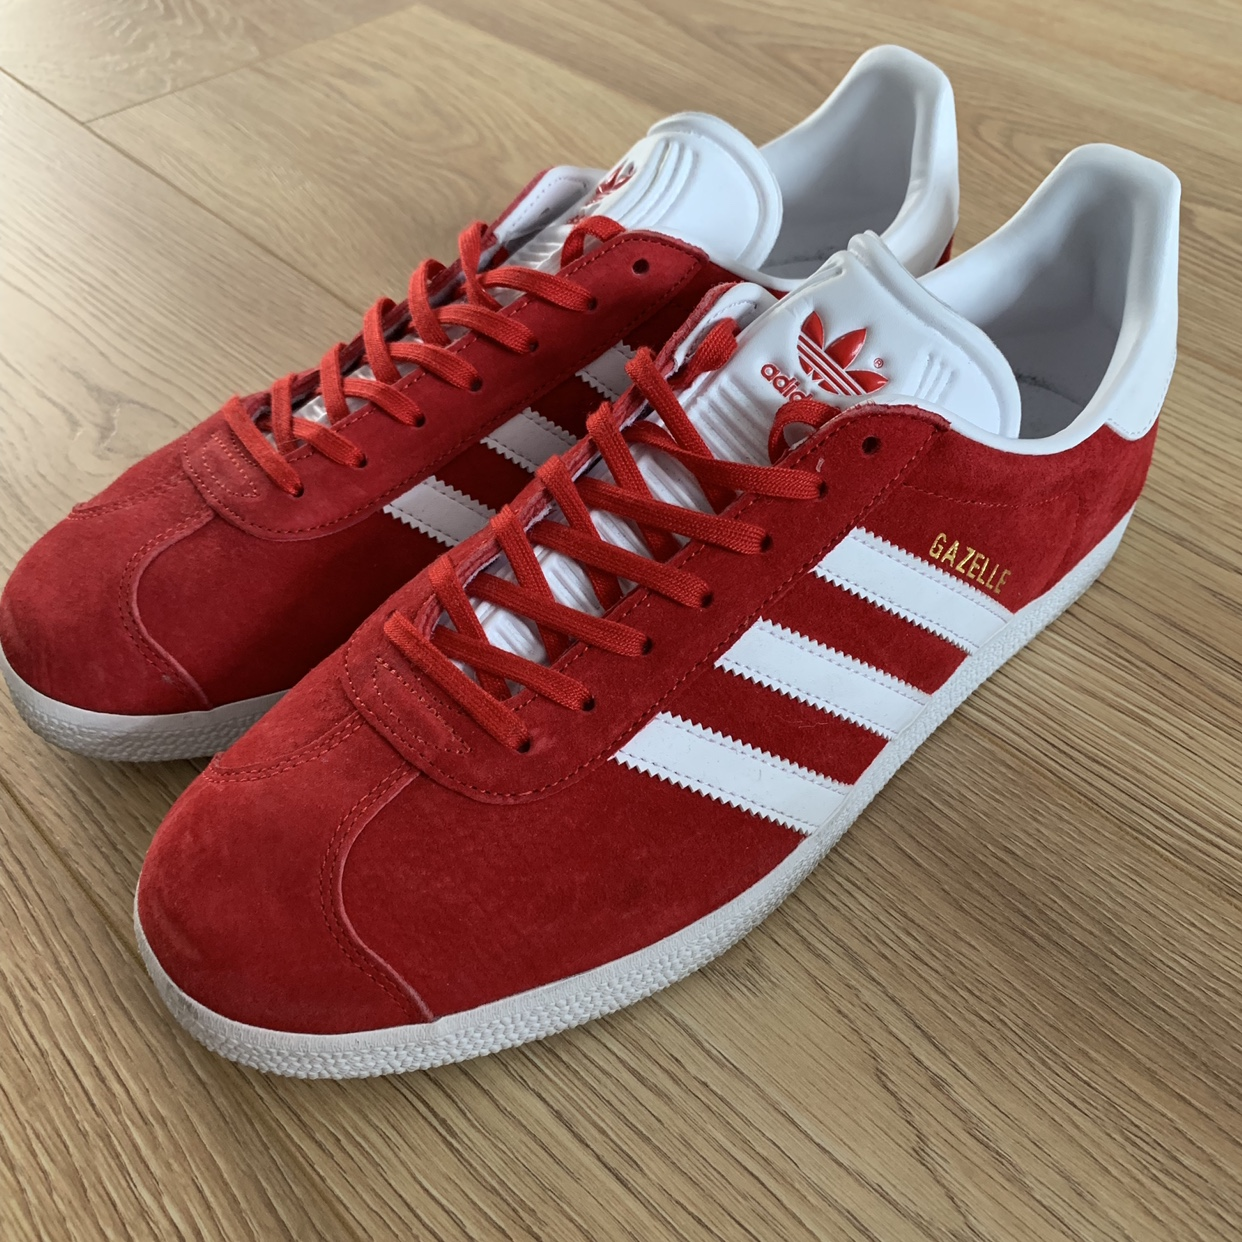 Red Adidas Gazelle trainers, UK size 10, excellent...